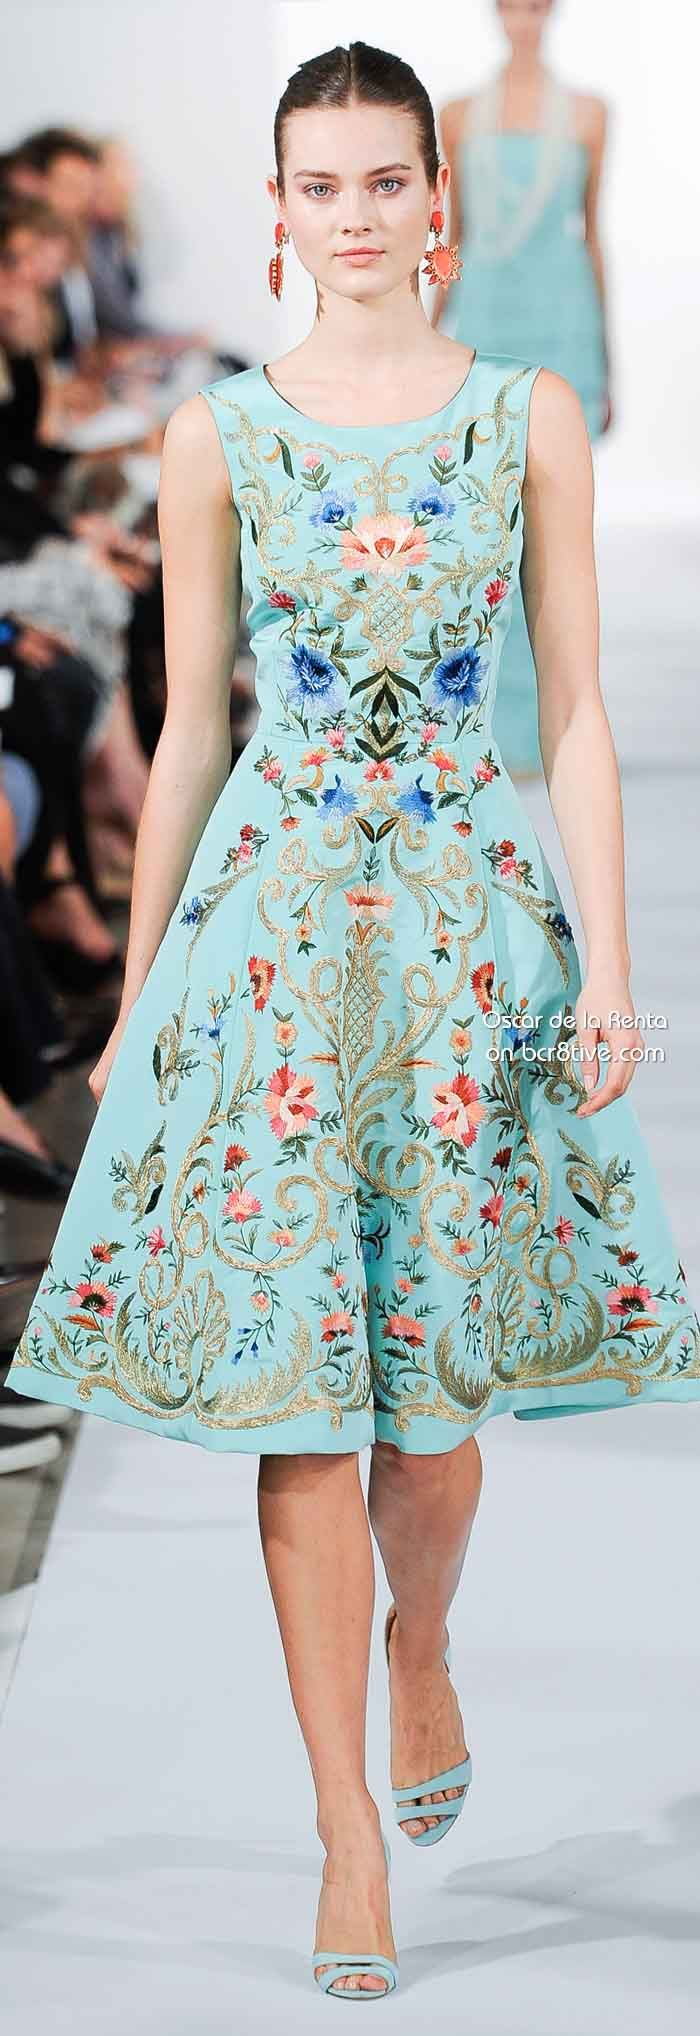 Oscar de la Renta Spring 2014 | Add some colors to your style | The Lady in in Teal | #Thejewelryhut